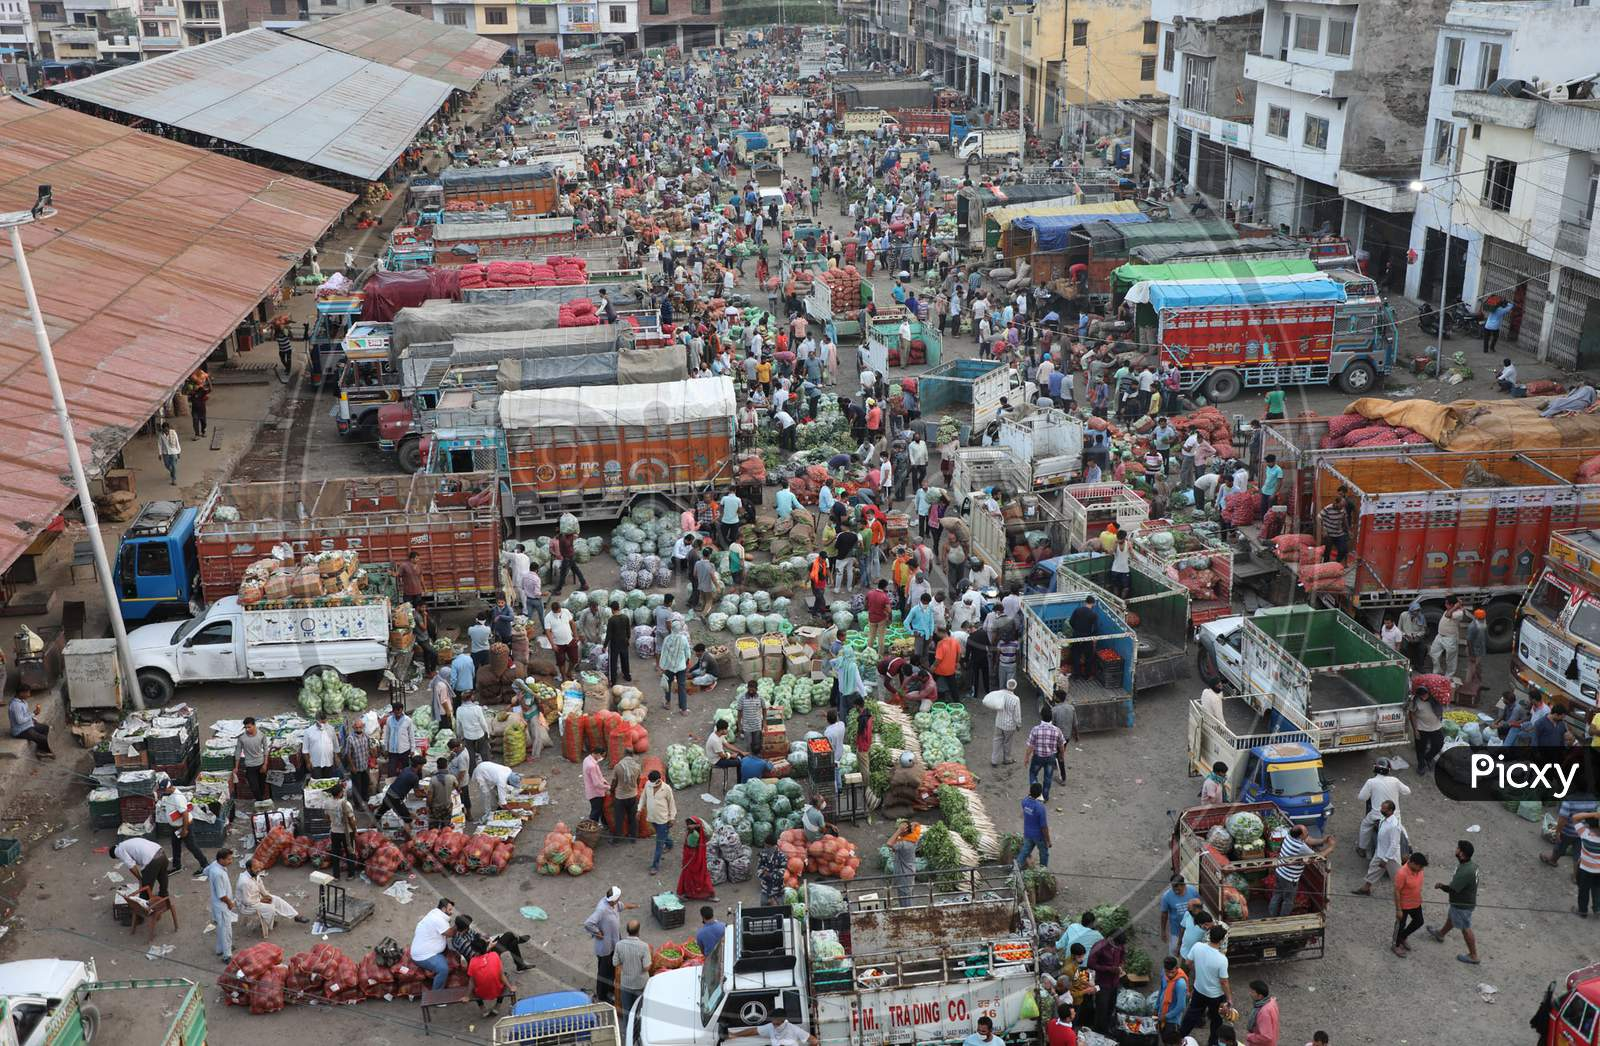 A view of people at a wholesale vegetable market seen defying social distancing guidelines, during Unlock 2.0, in Jammu